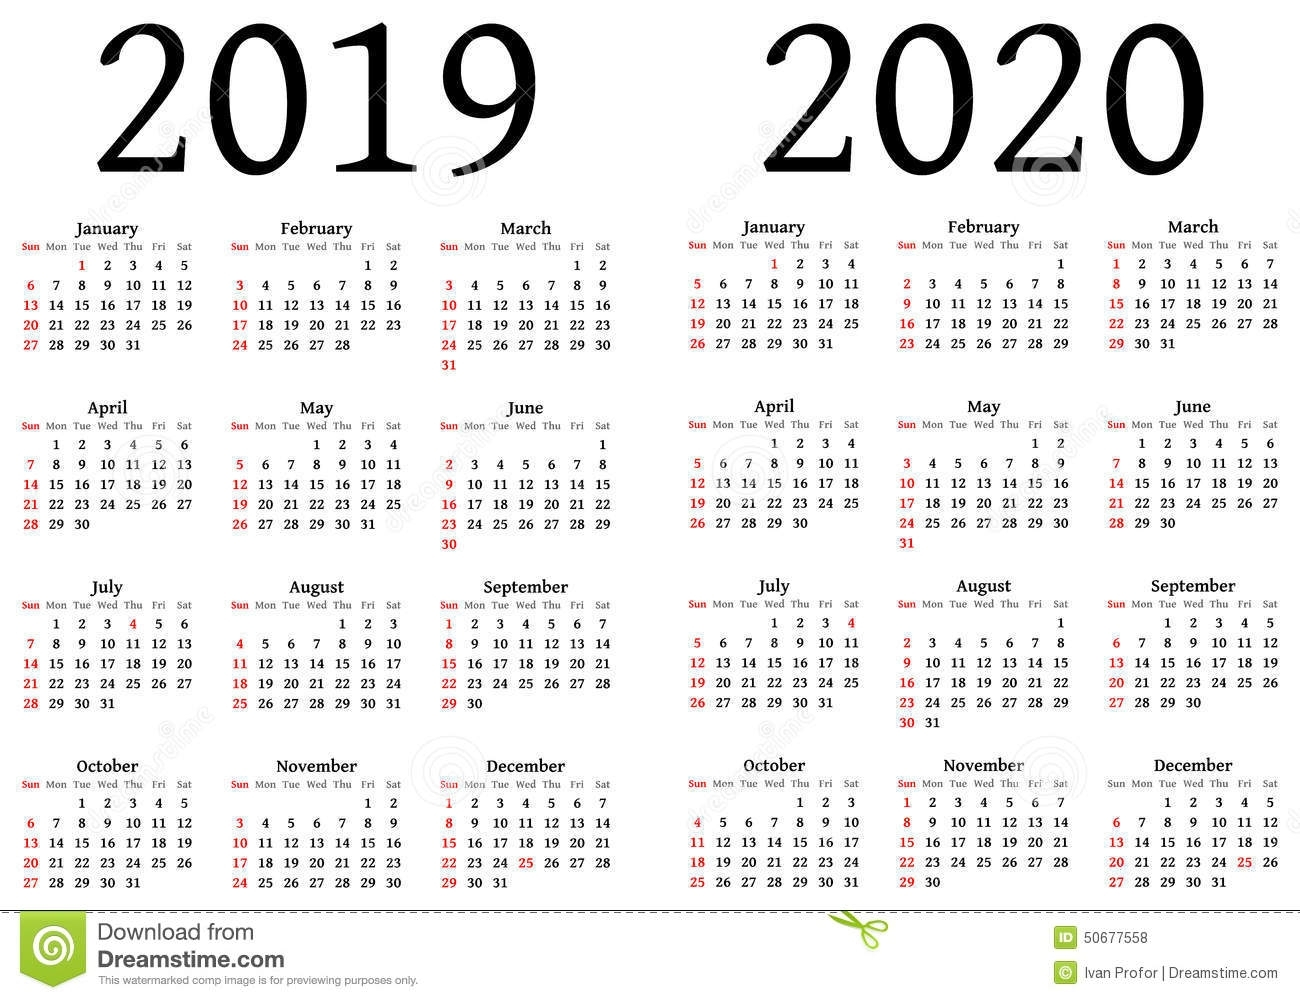 Printable Calendar For 2019 And 2020 | Printable Calendar 2019 pertaining to Printable Calendar 2019 2020 Monday To Sunday